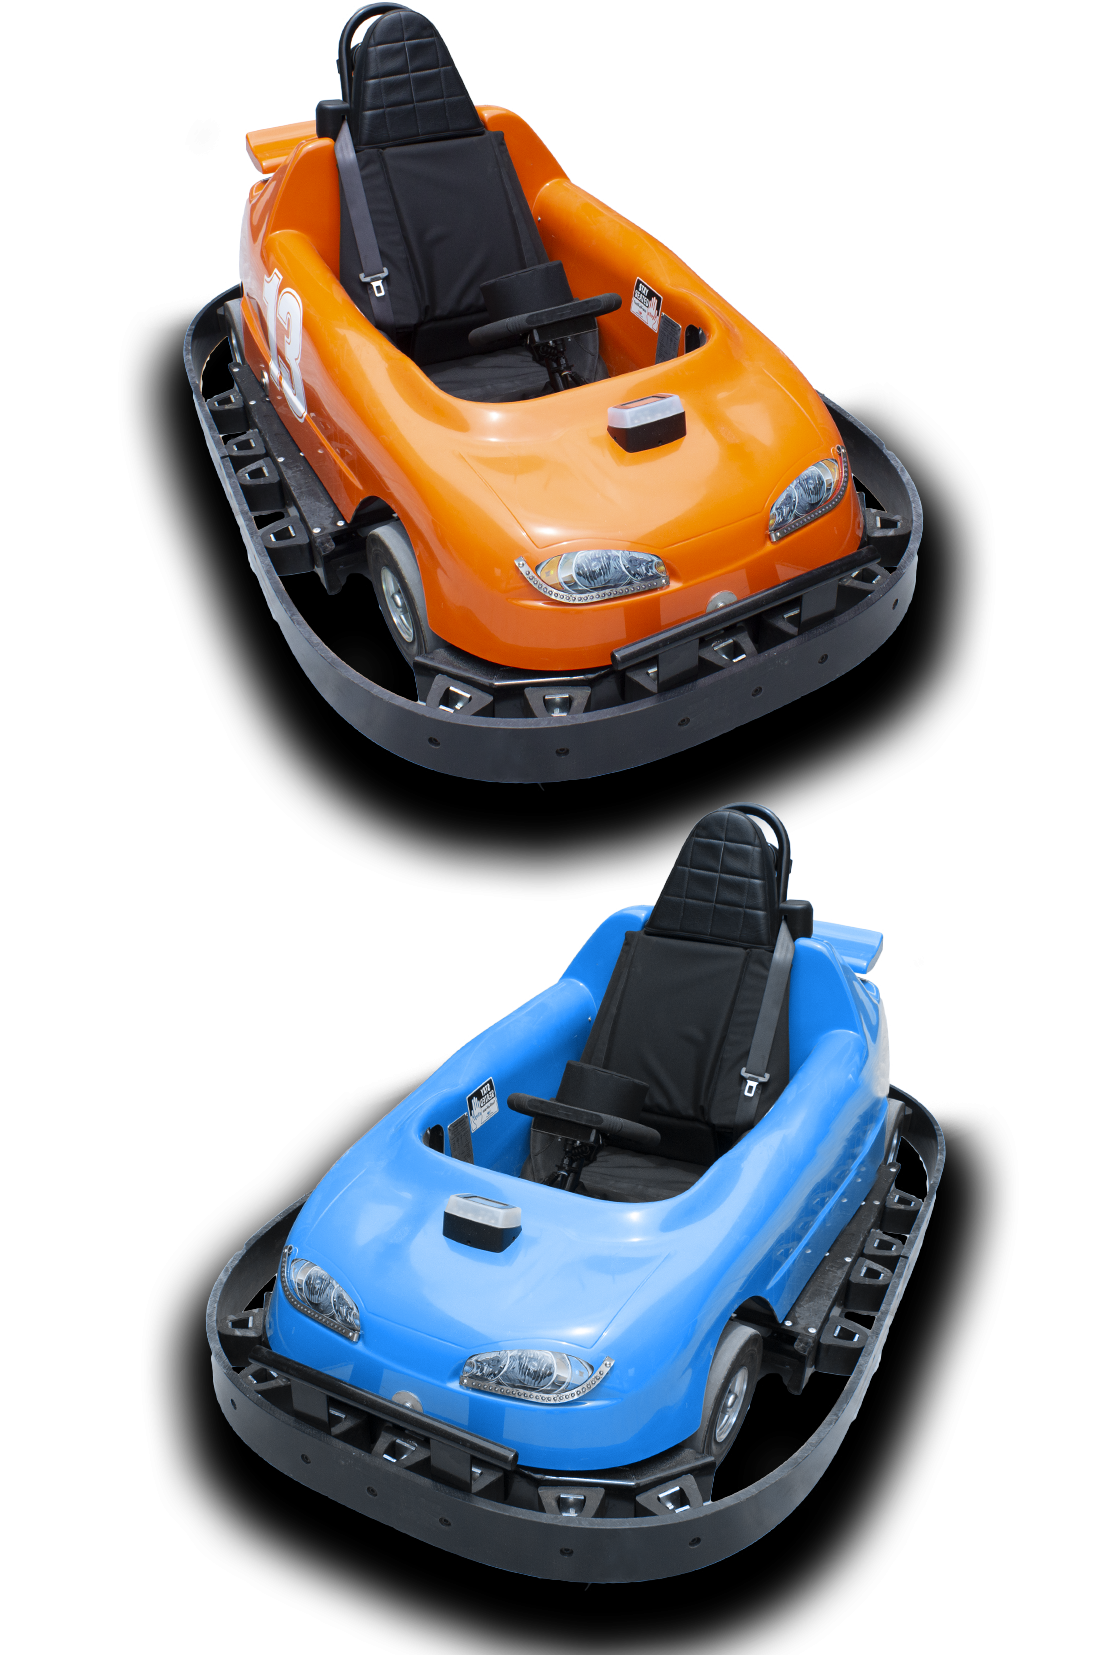 Our go karts for racing in blue and orange